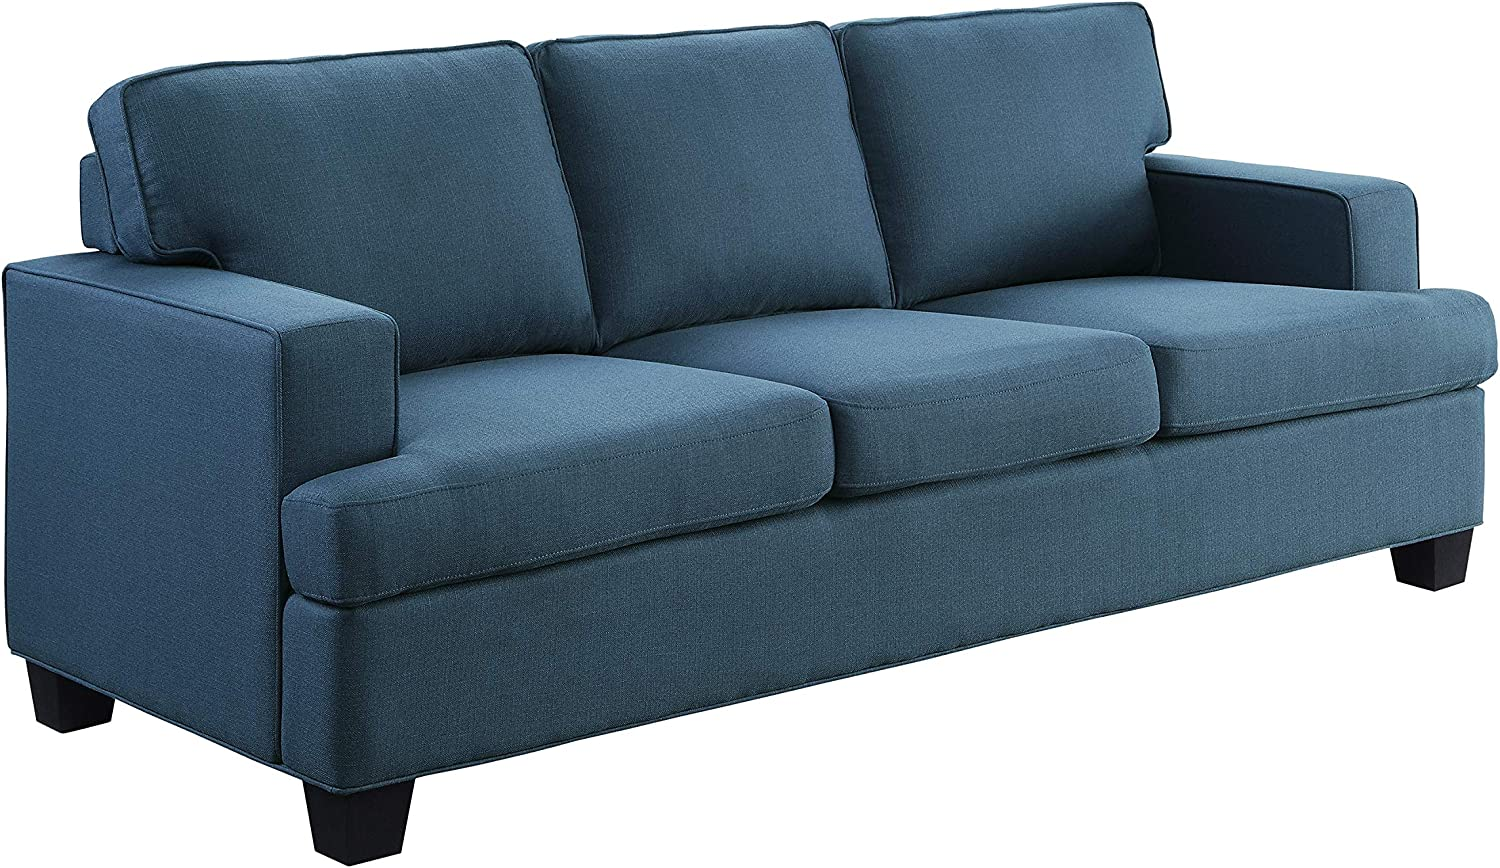 Lexicon Ashland Living Room Sofa, Blue